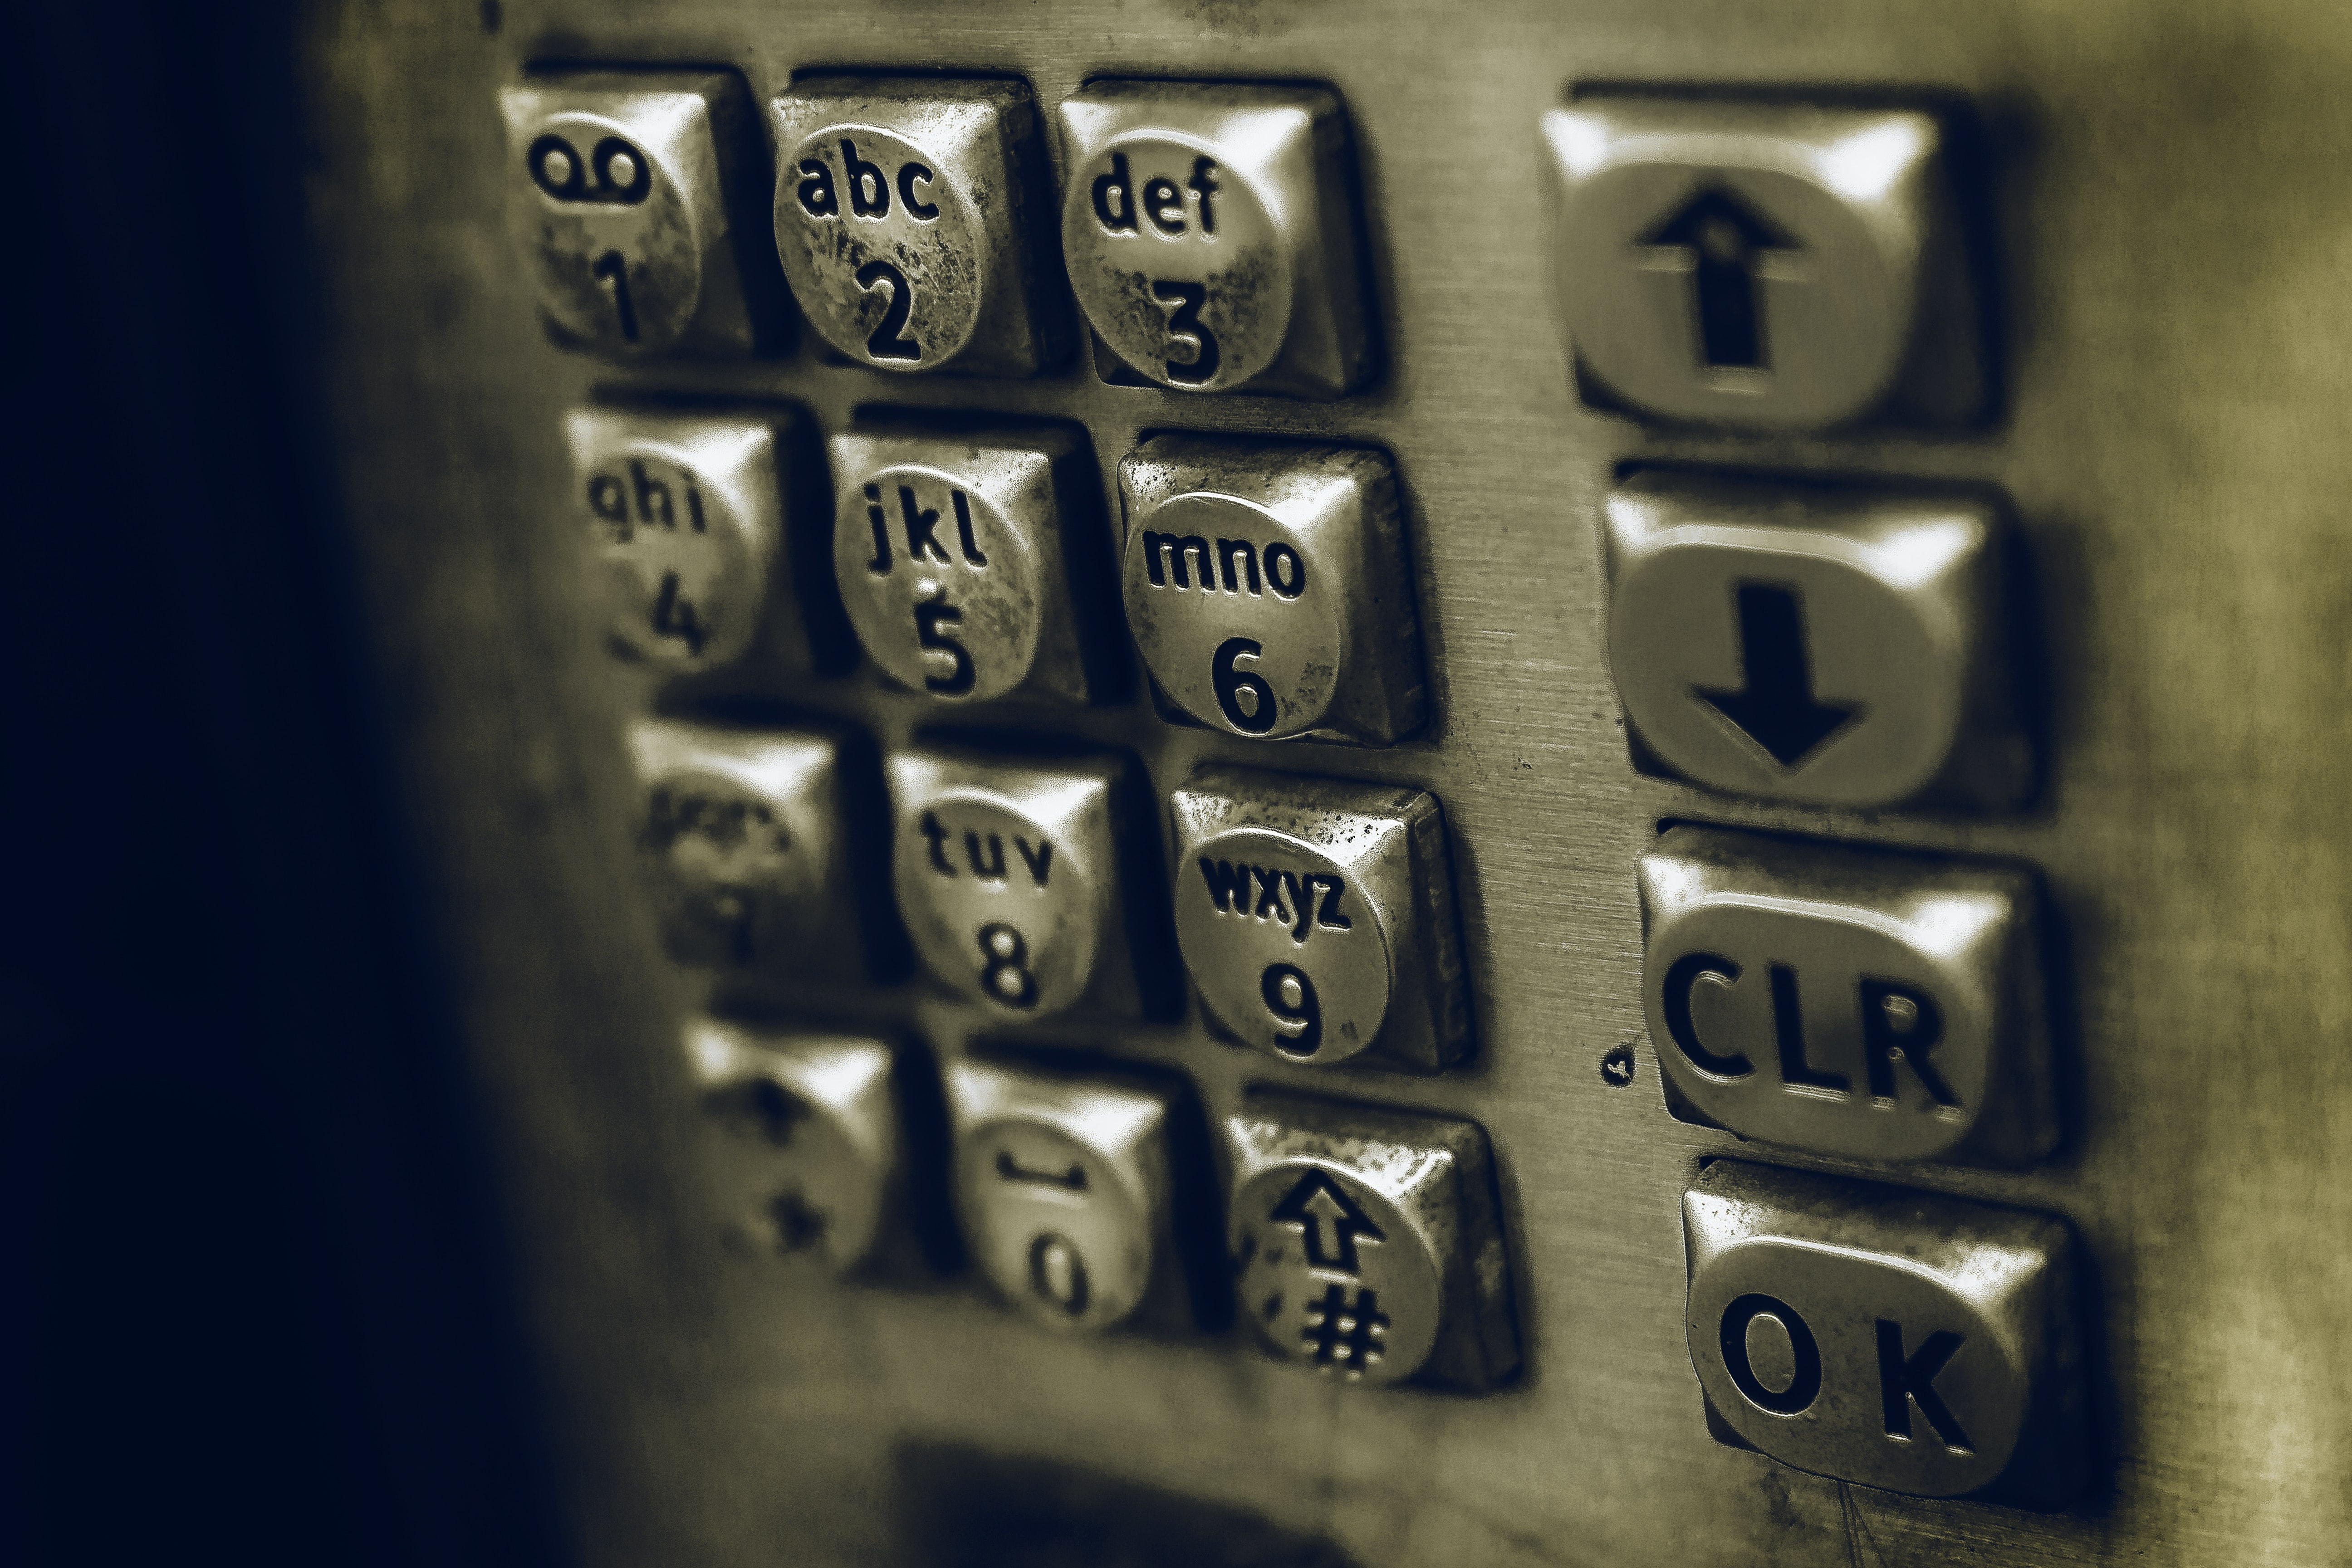 Close-up of a payphone keypad